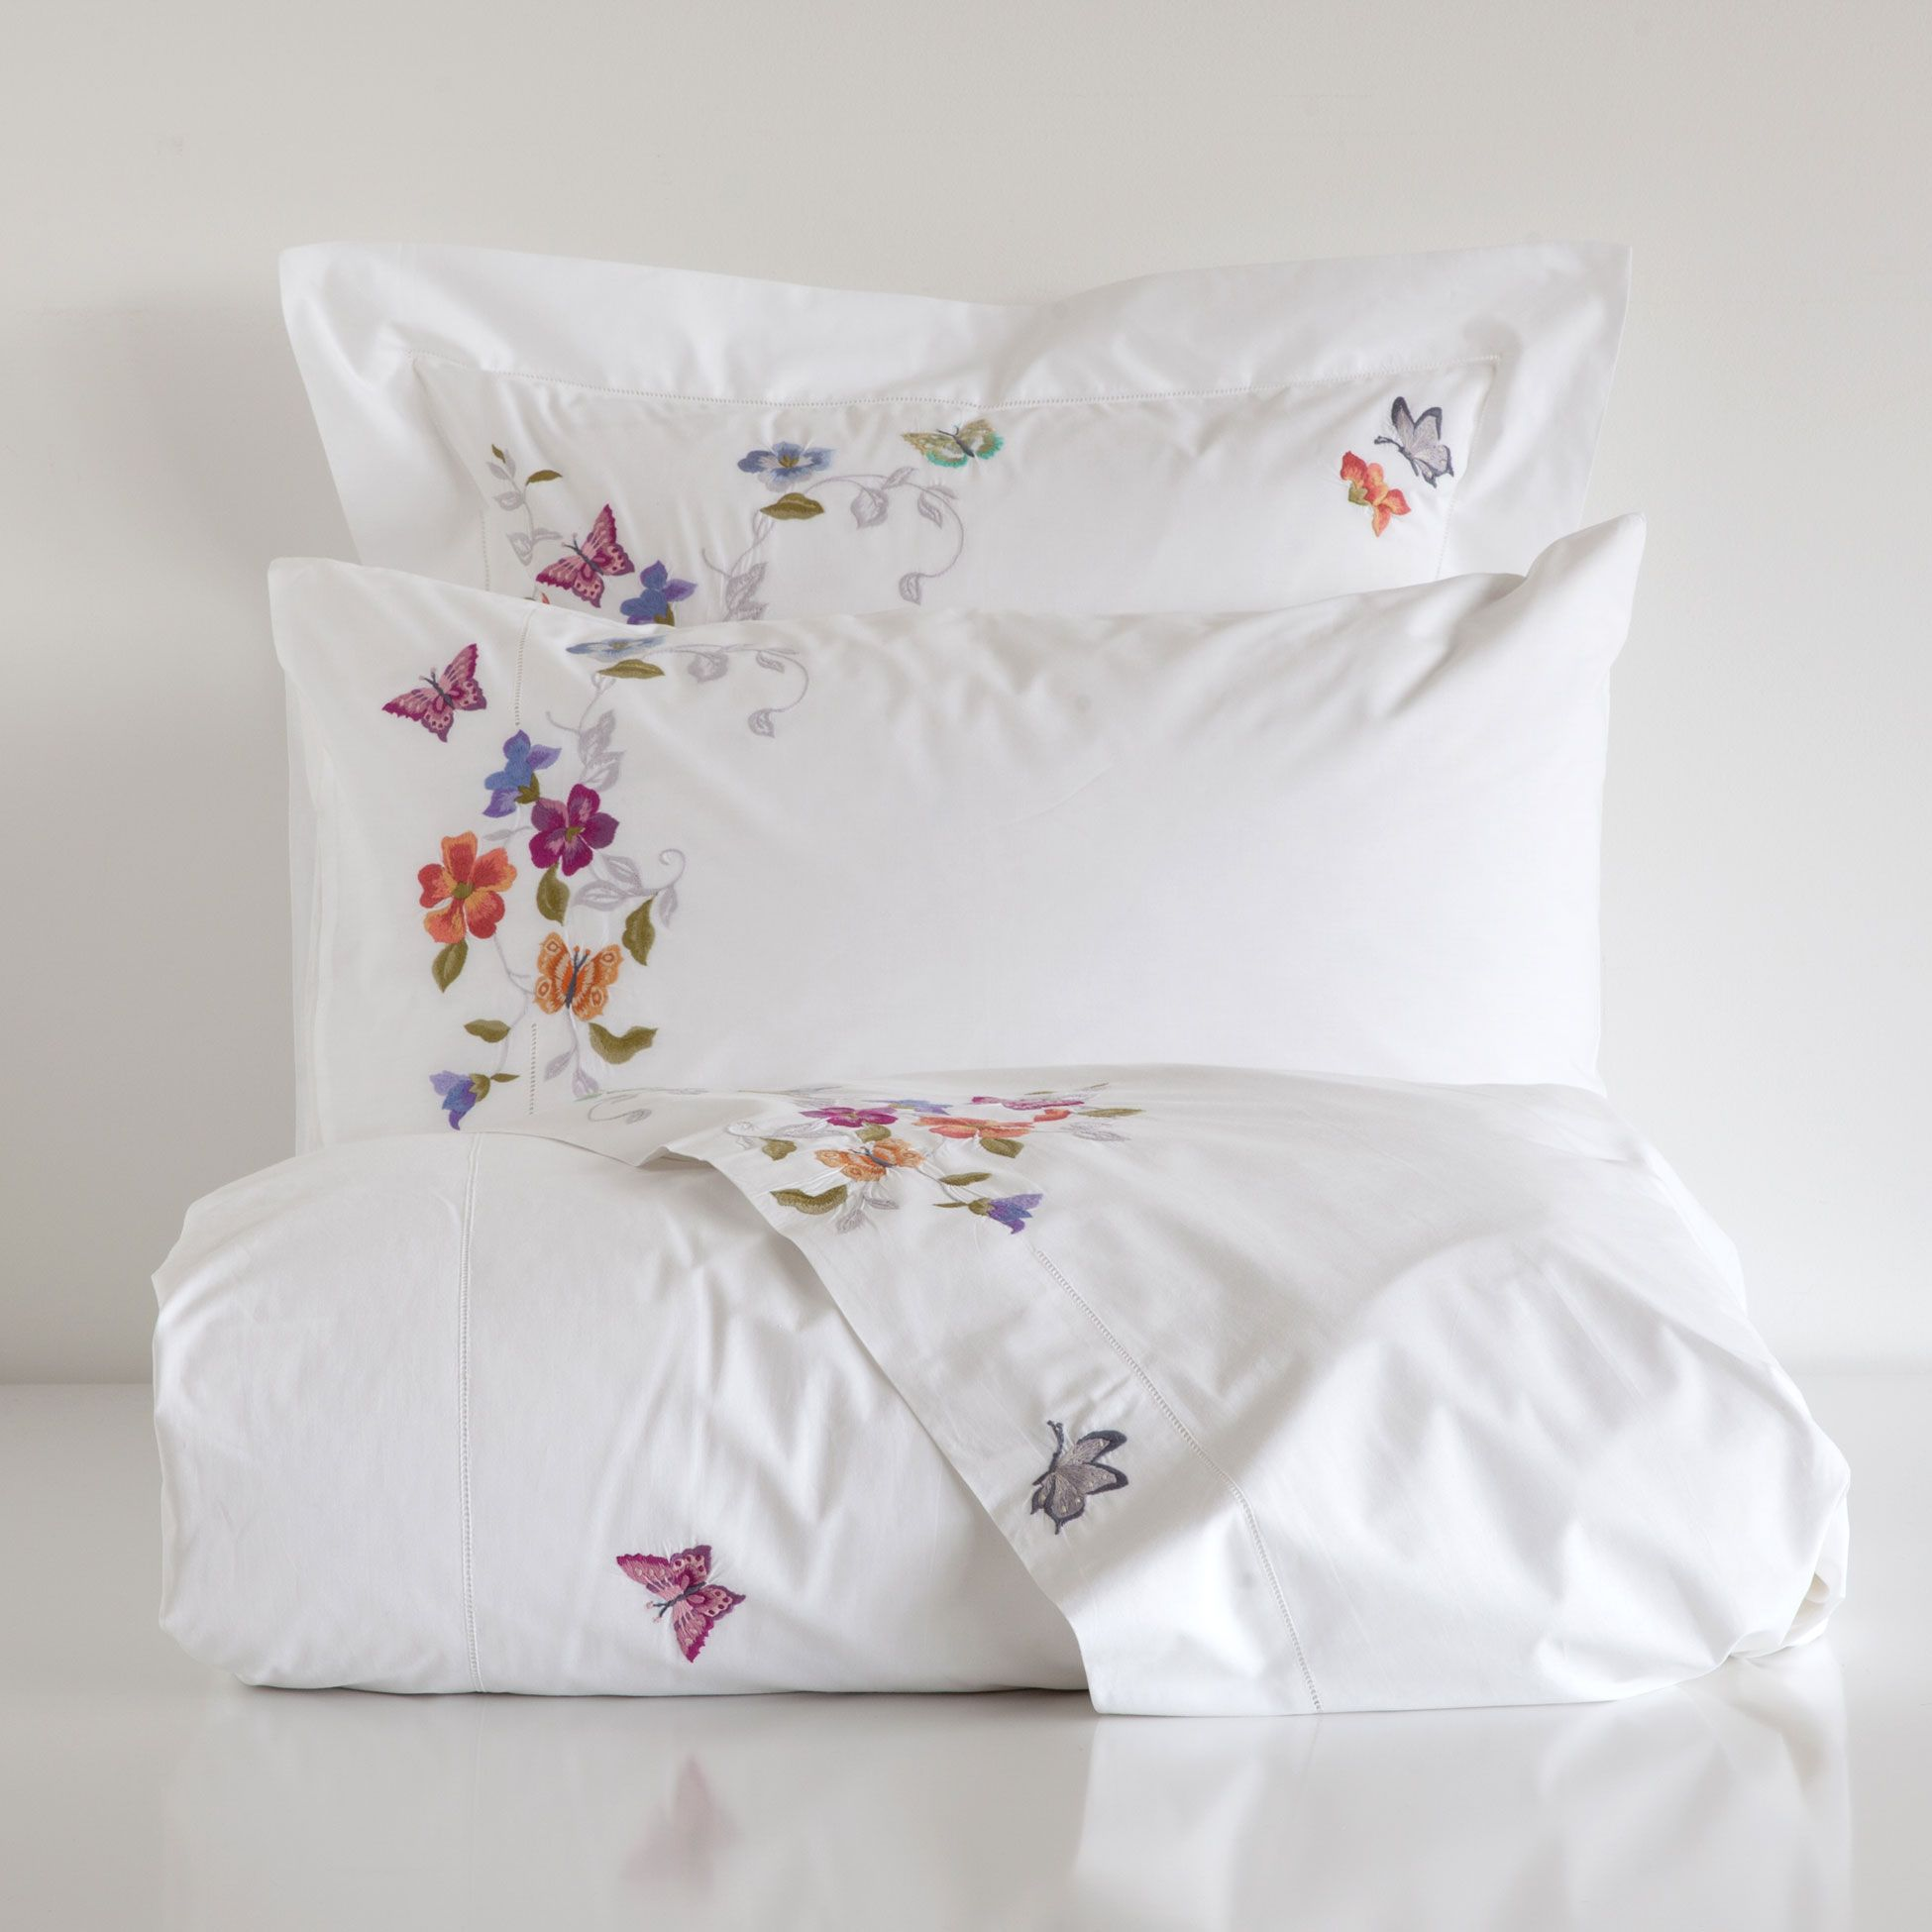 linge de lit percale broderie papillons princess room bedrooms and room